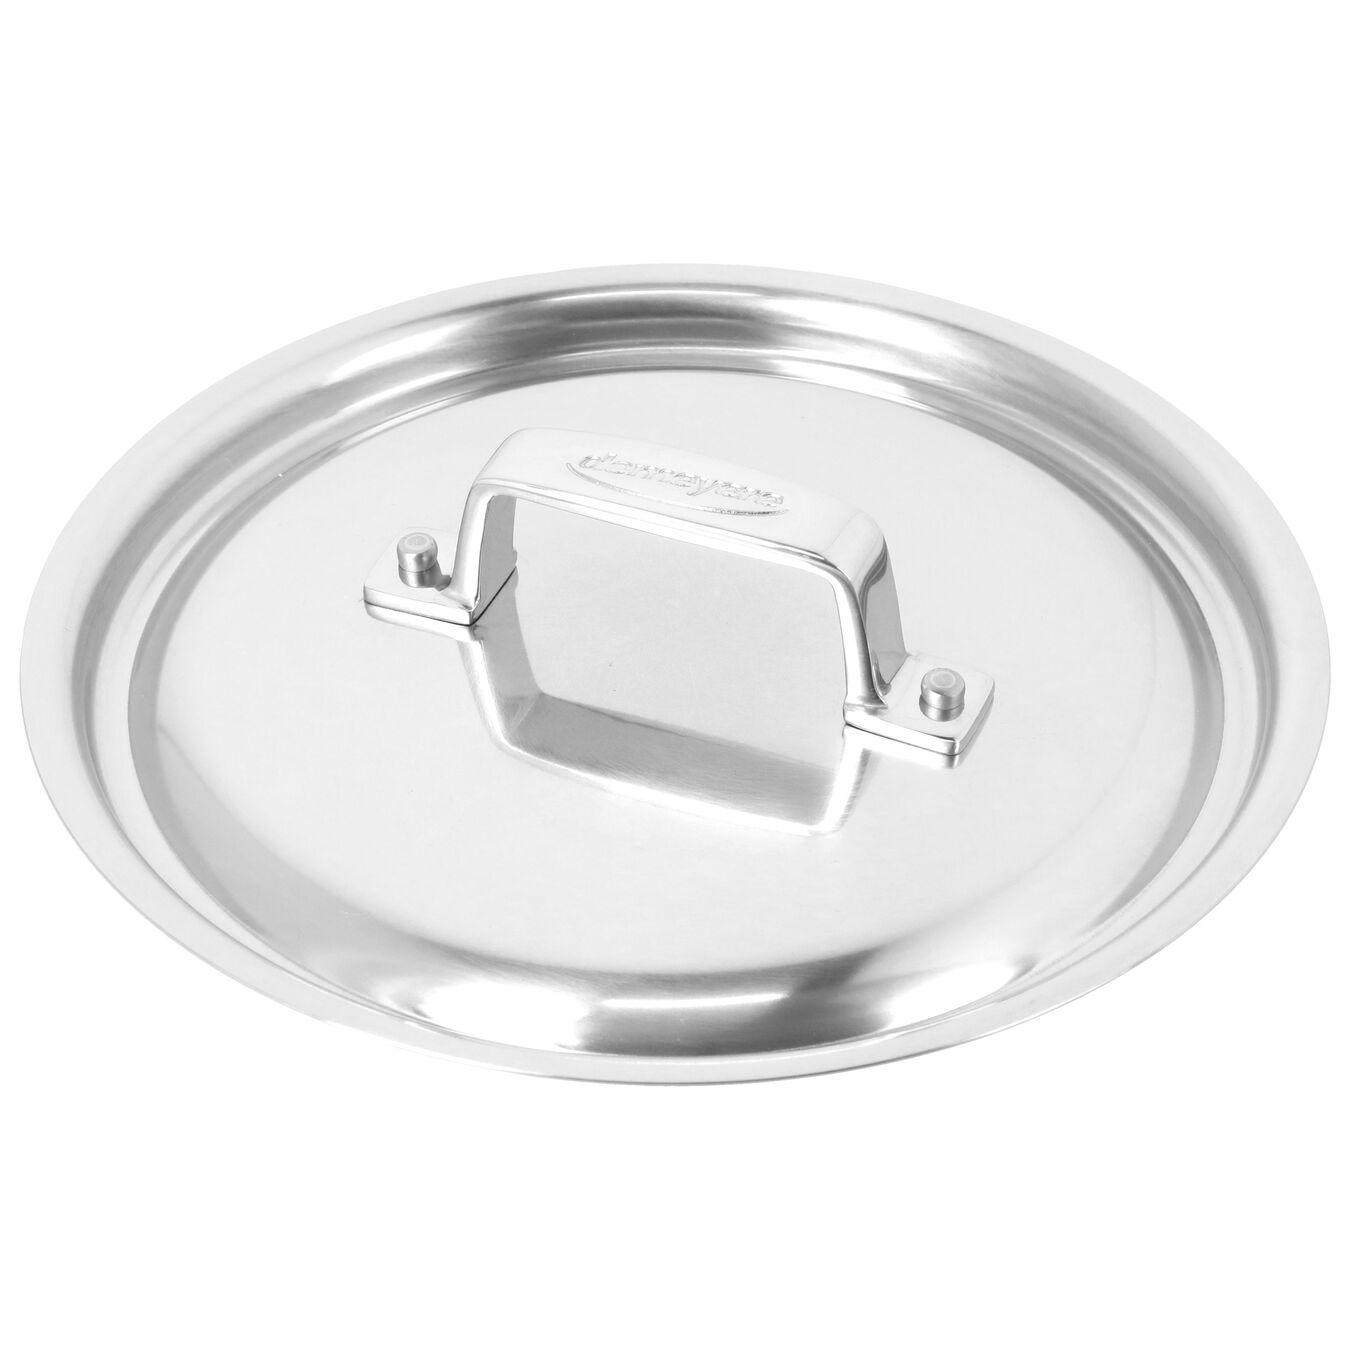 2.8 l round sauce pan with lid 3QT, silver,,large 7